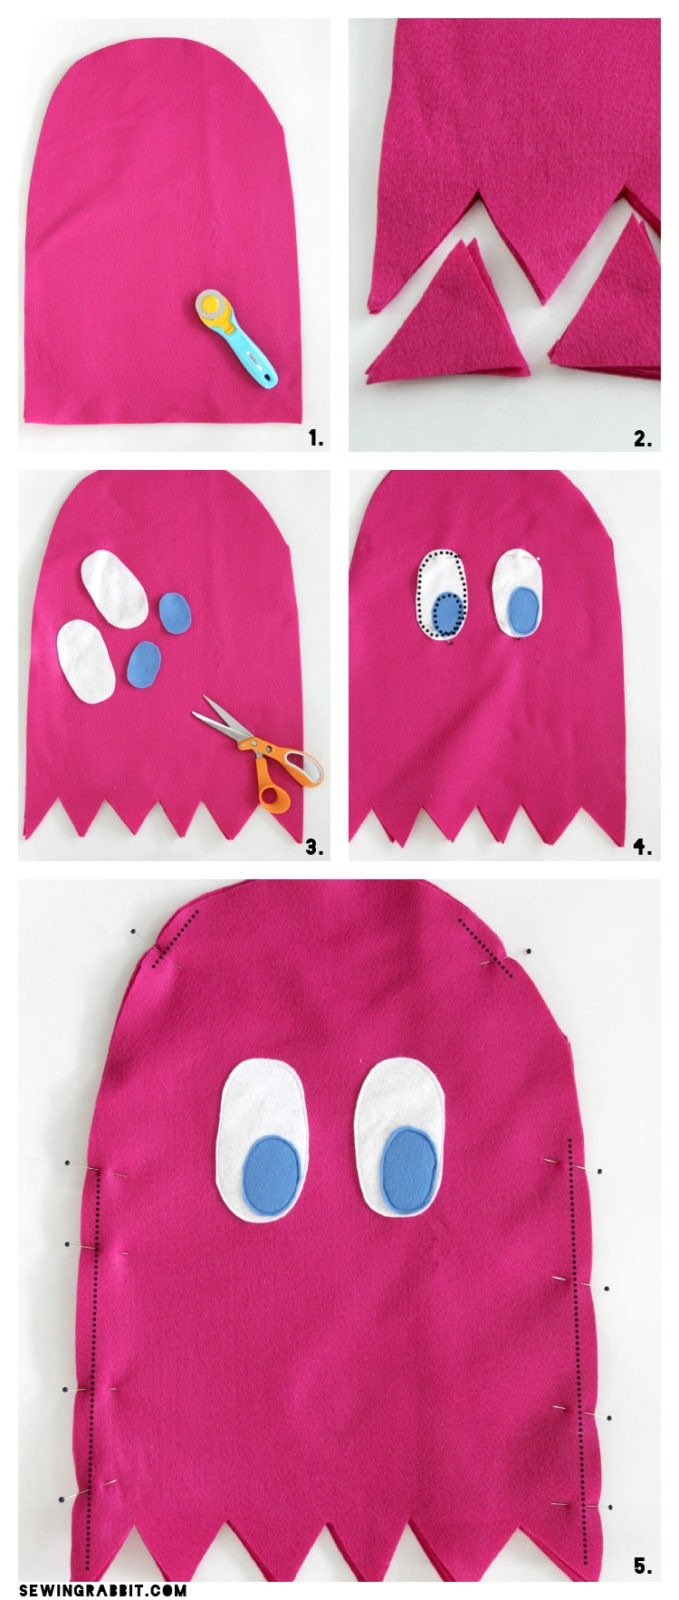 Pac Man Costume Diy : costume, Pac-Man, Ghost, Costume, Sewing, Rabbit